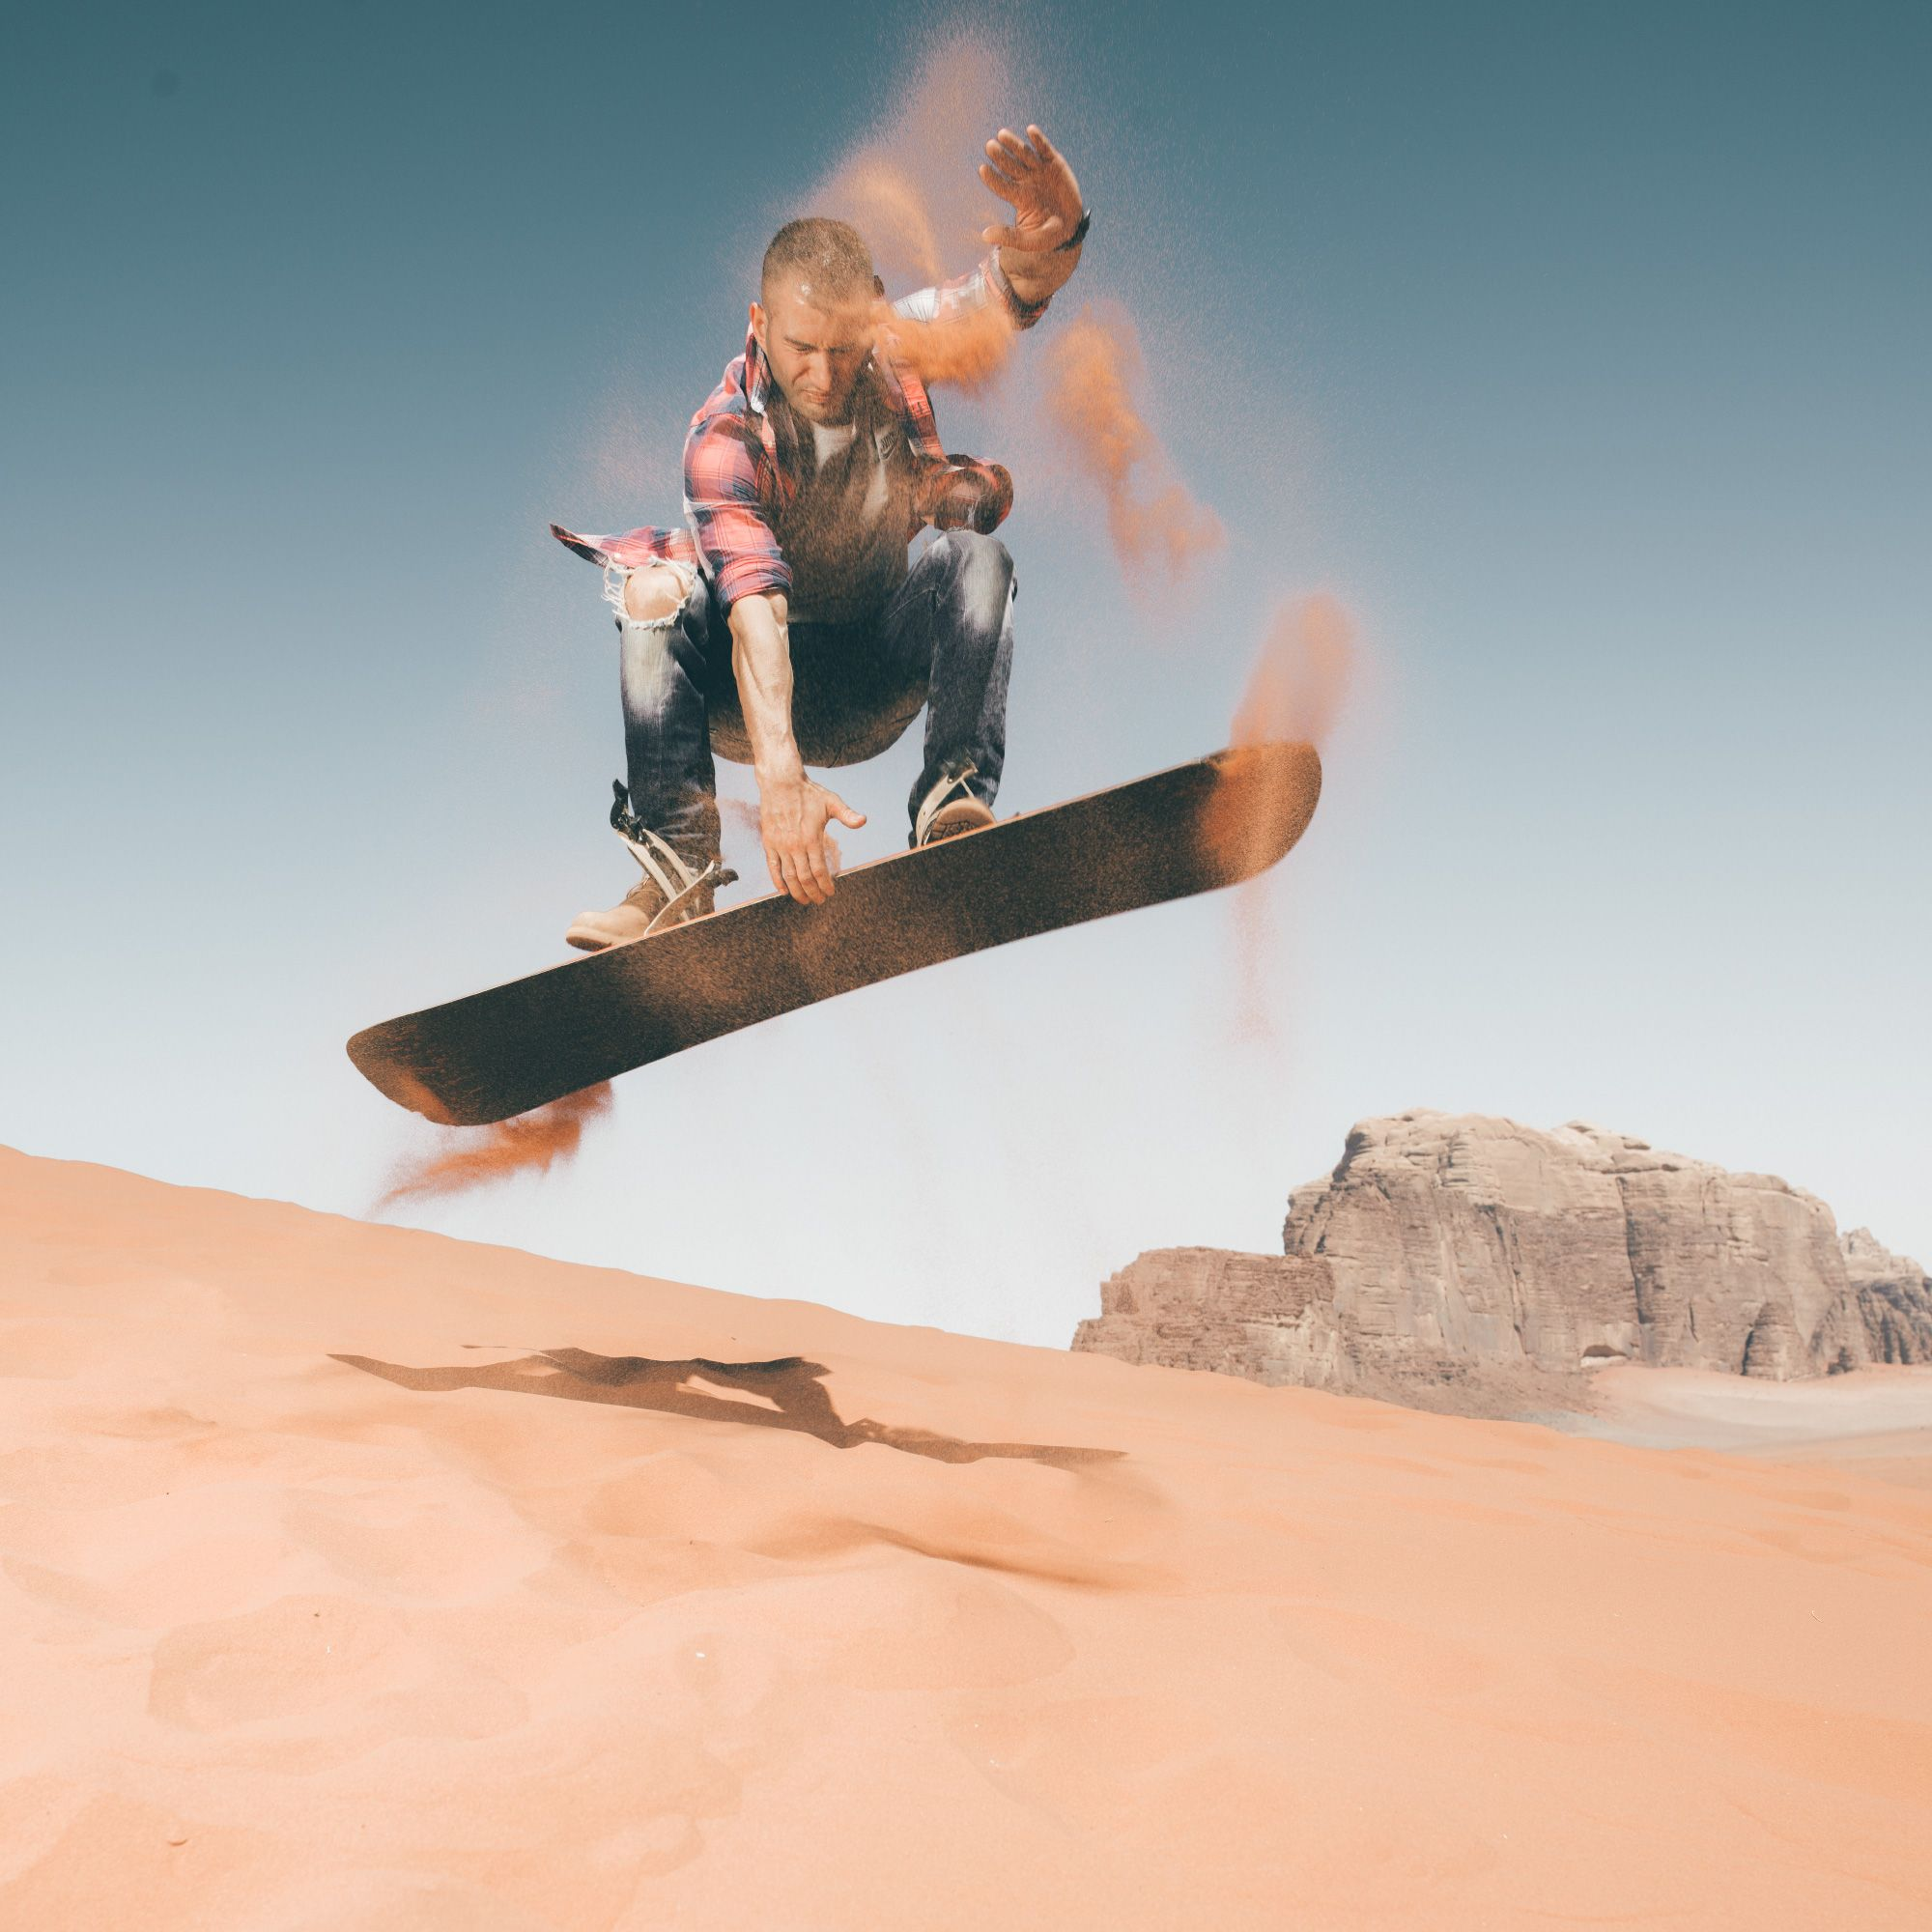 Riding the sand dunes in Wadi Rum  Who needs snow , when you